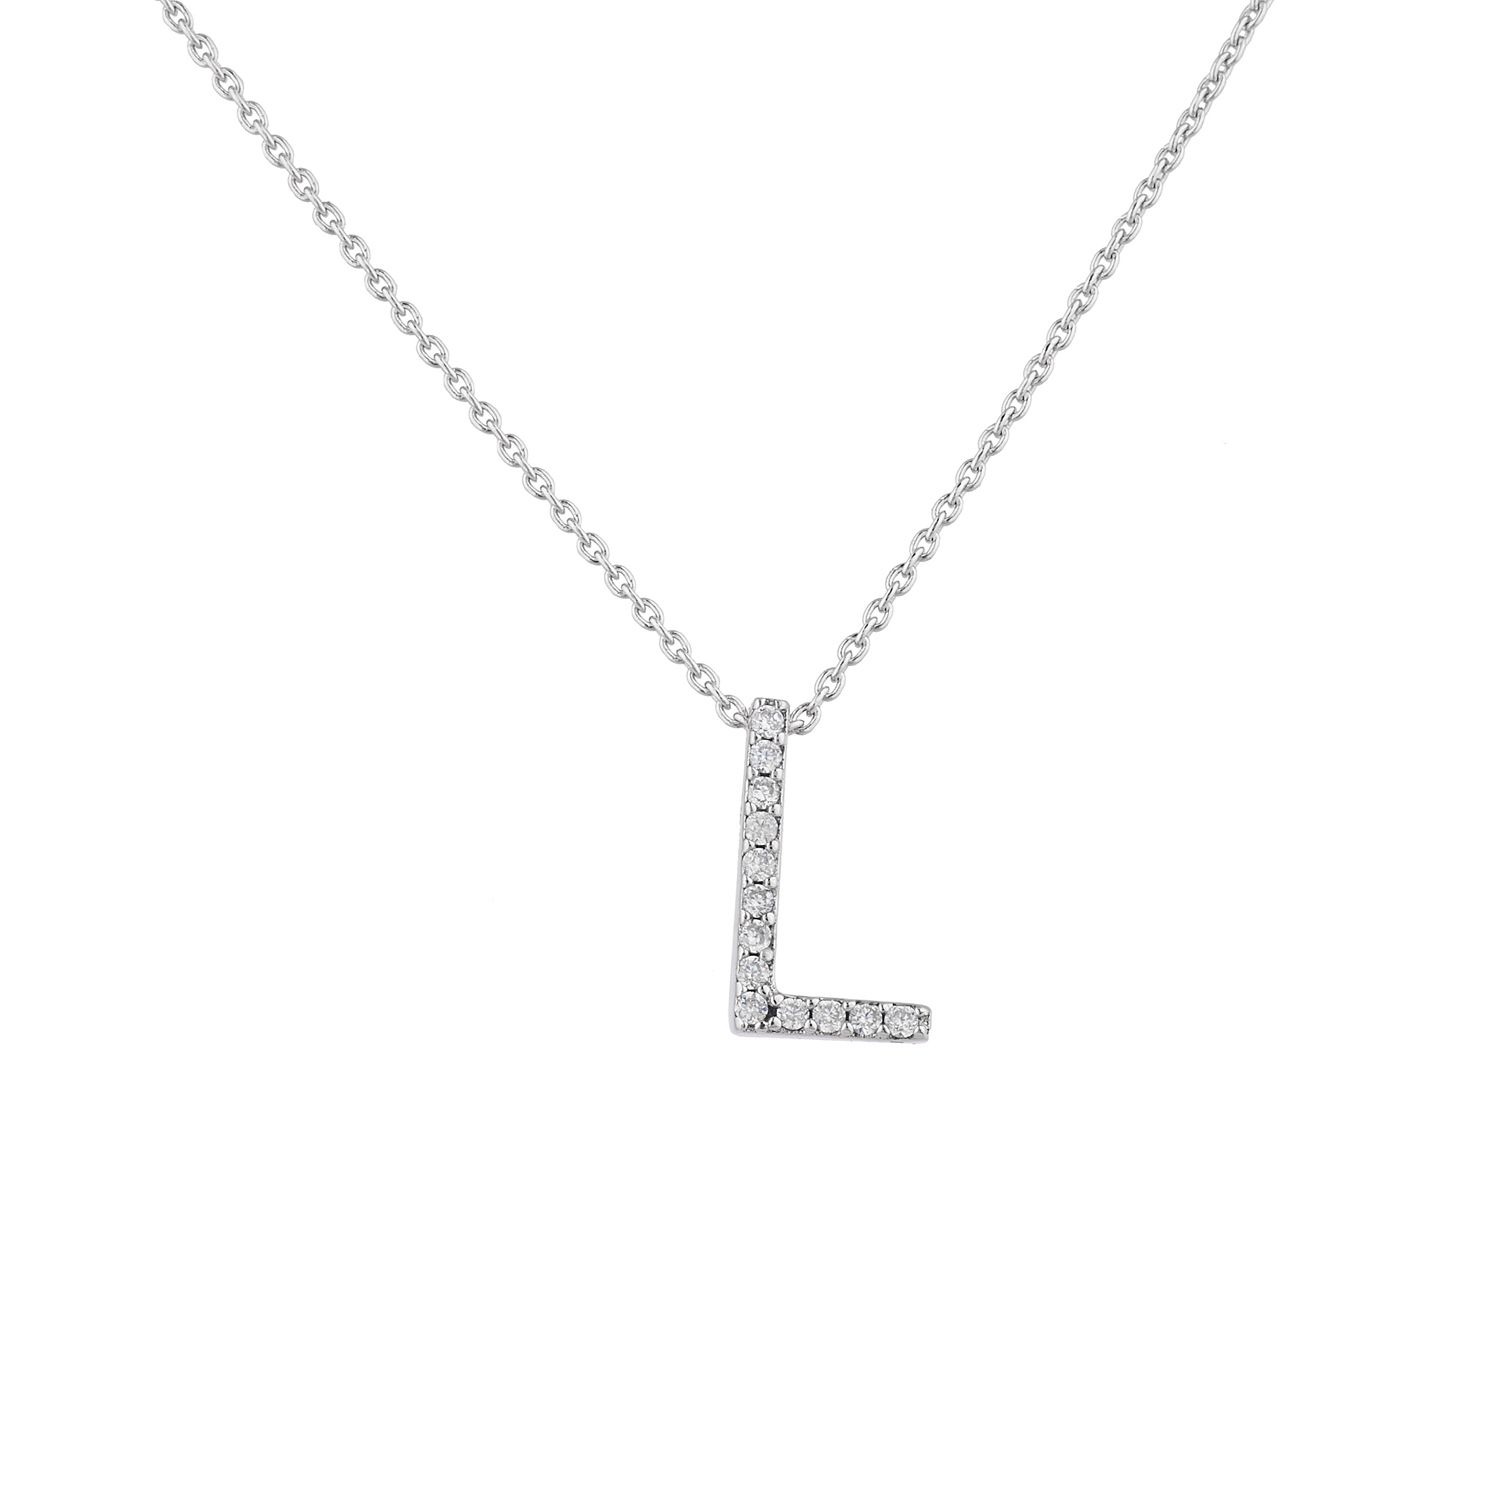 silver cz personalized pendantroundcz round small with pendant necklace sterling